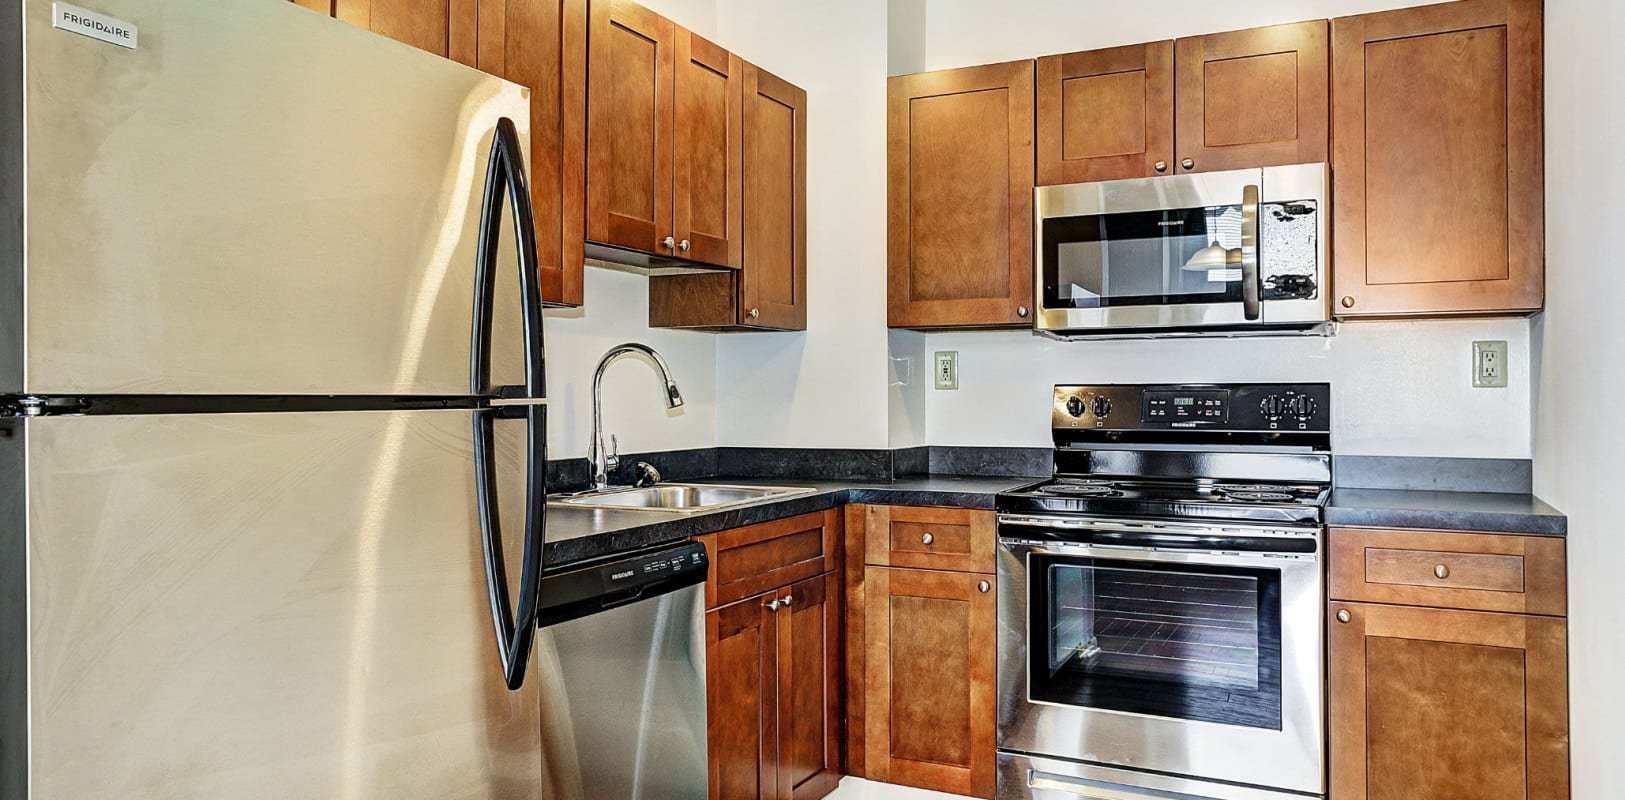 Kitchen with stainless steel appliances at Brighton Court in Bethlehem, Pennsylvania